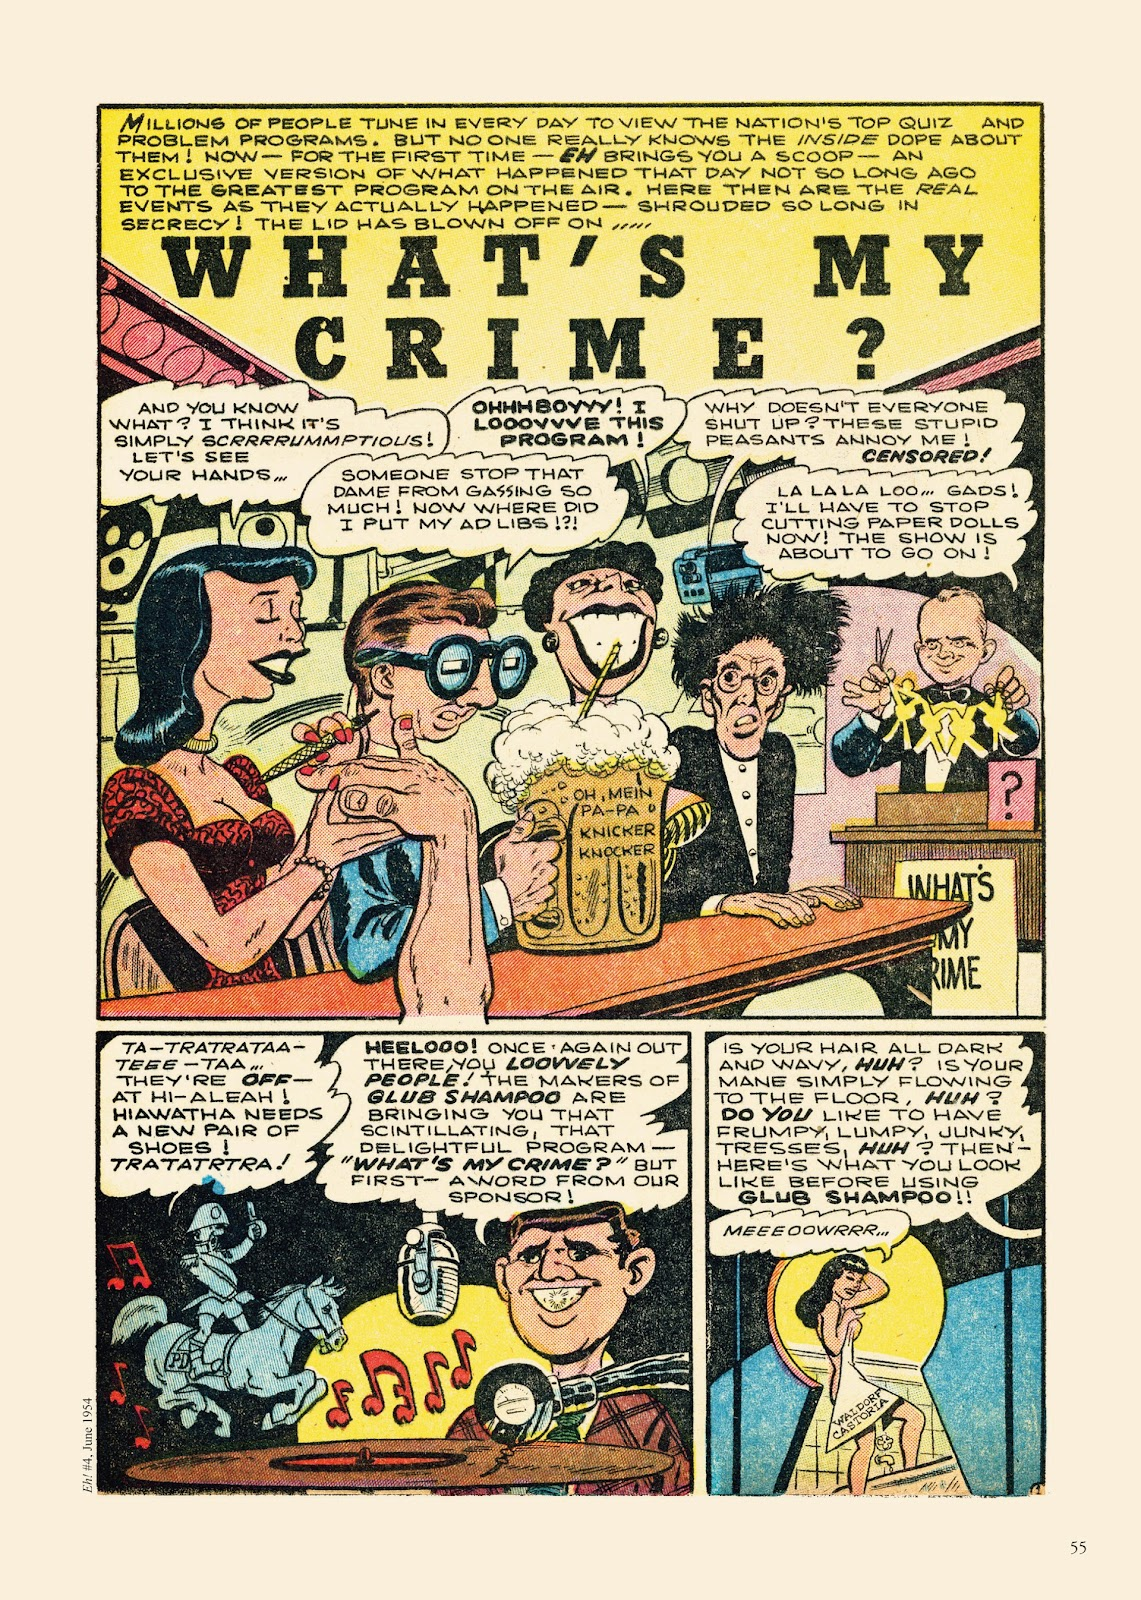 Read online Sincerest Form of Parody: The Best 1950s MAD-Inspired Satirical Comics comic -  Issue # TPB (Part 1) - 56